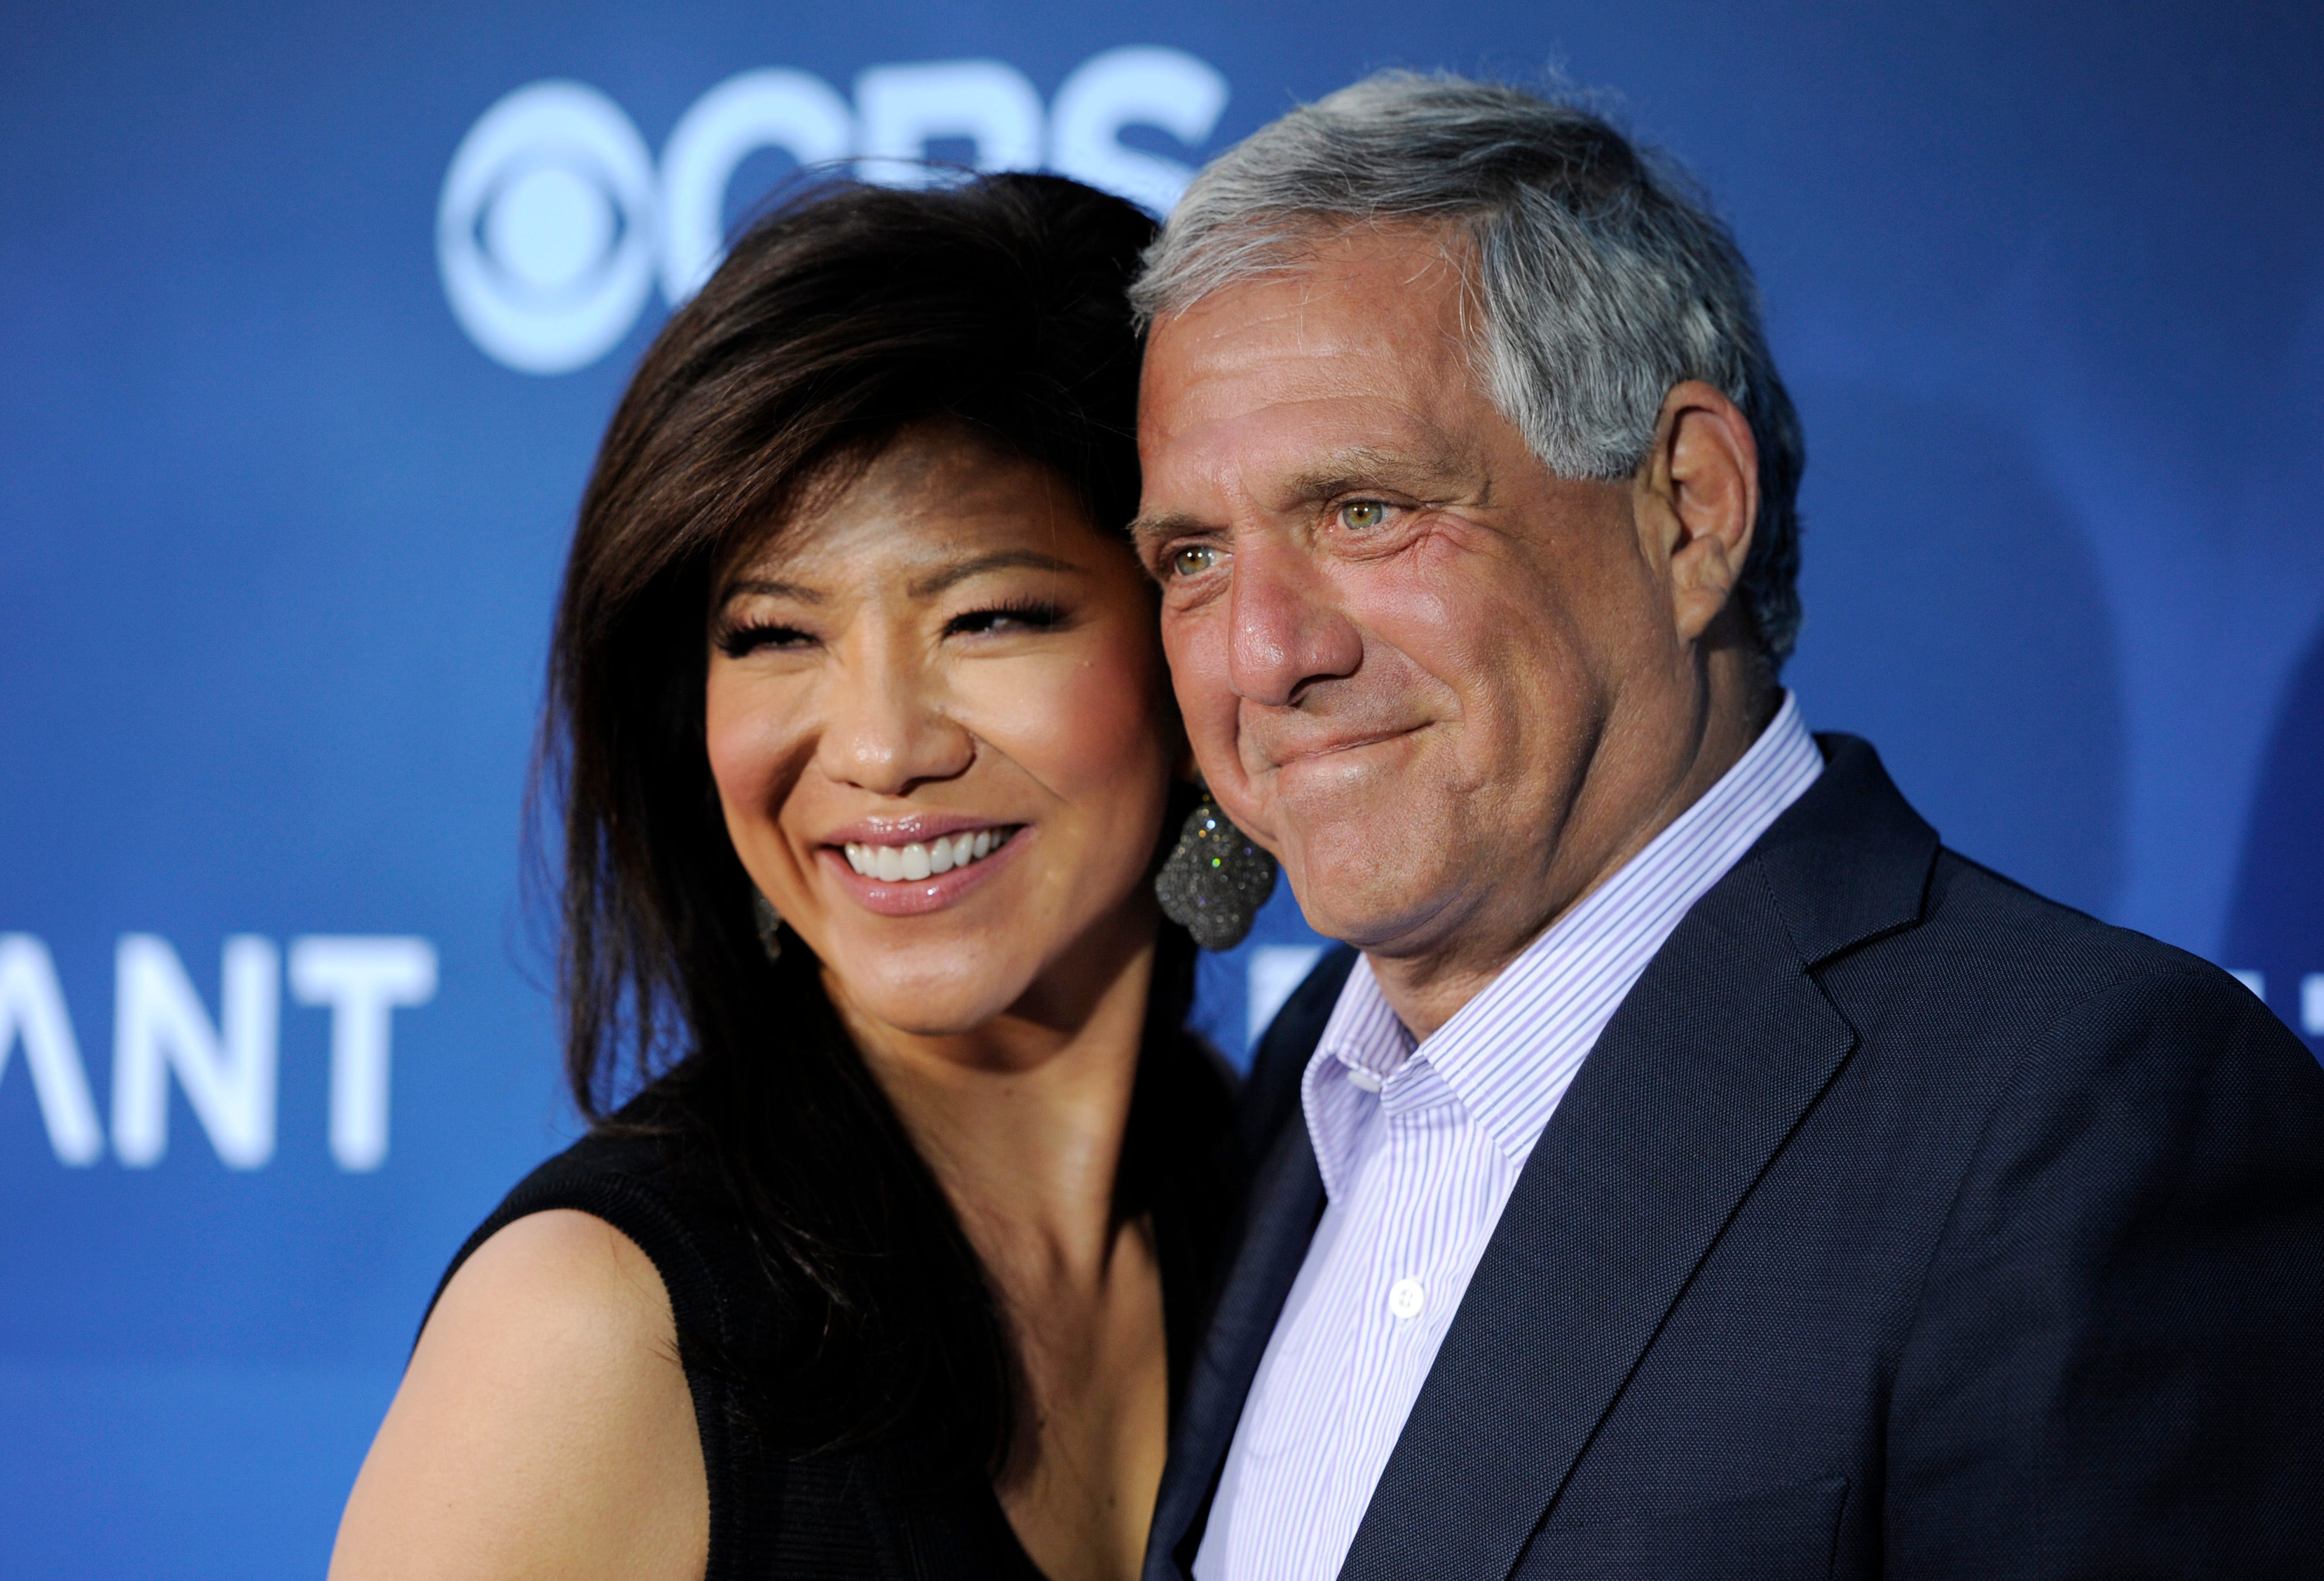 Julie Chen 'excited' to return to 'Big Brother' after husband Les Moonves' CBS ouster